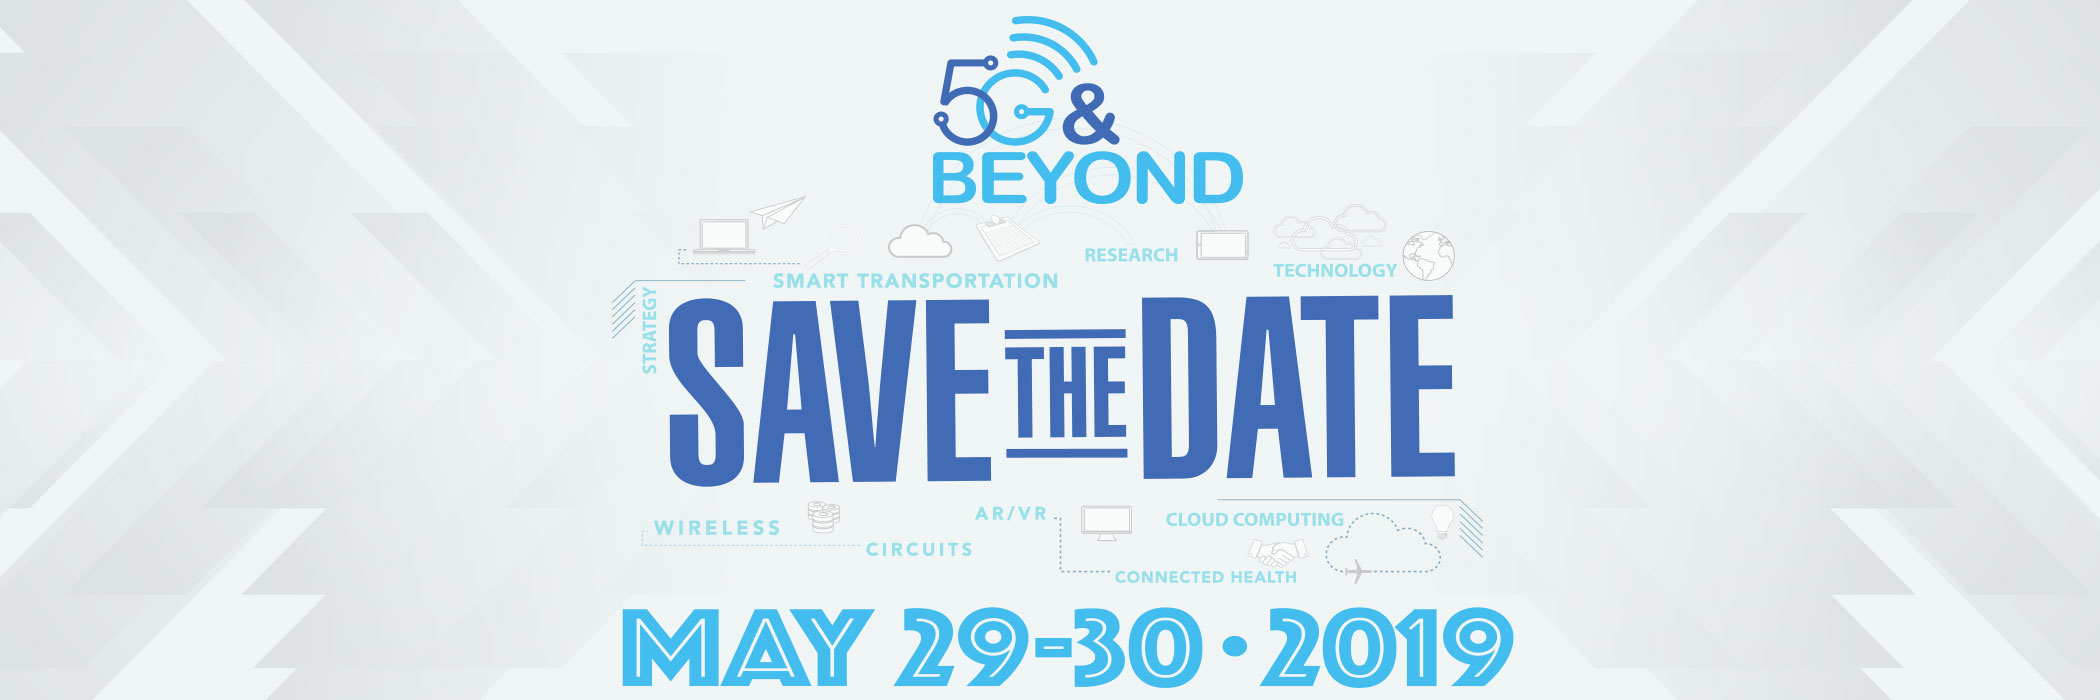 Save the Date for 5G & Beyond Forum